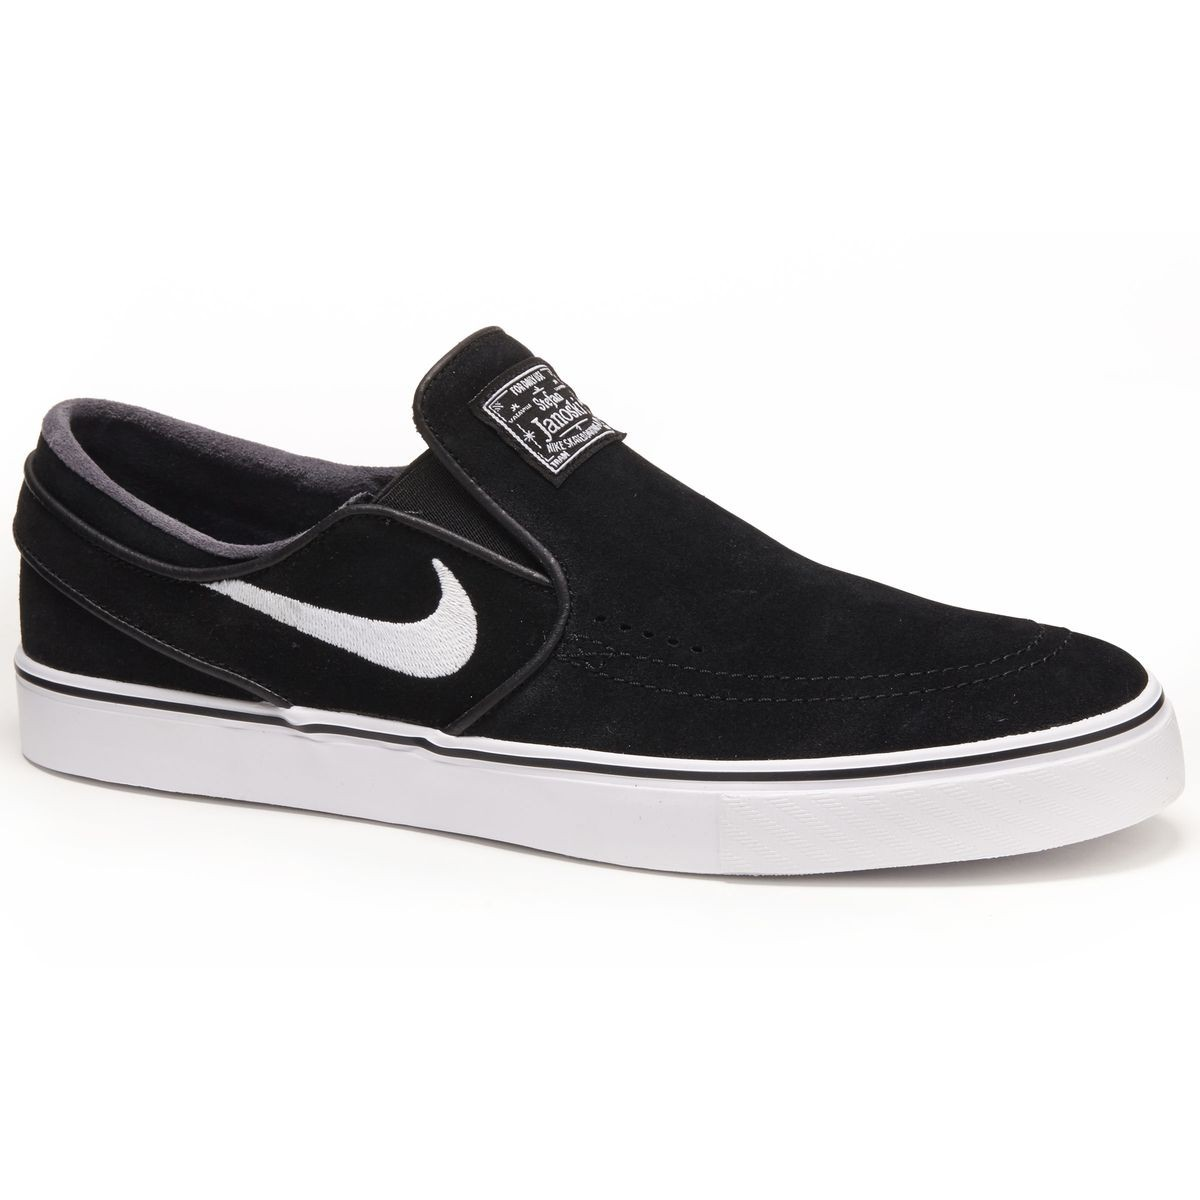 Get the best deals on nike slip on shoes and save up to 70% off at Poshmark now! Whatever you're shopping for, we've got it.